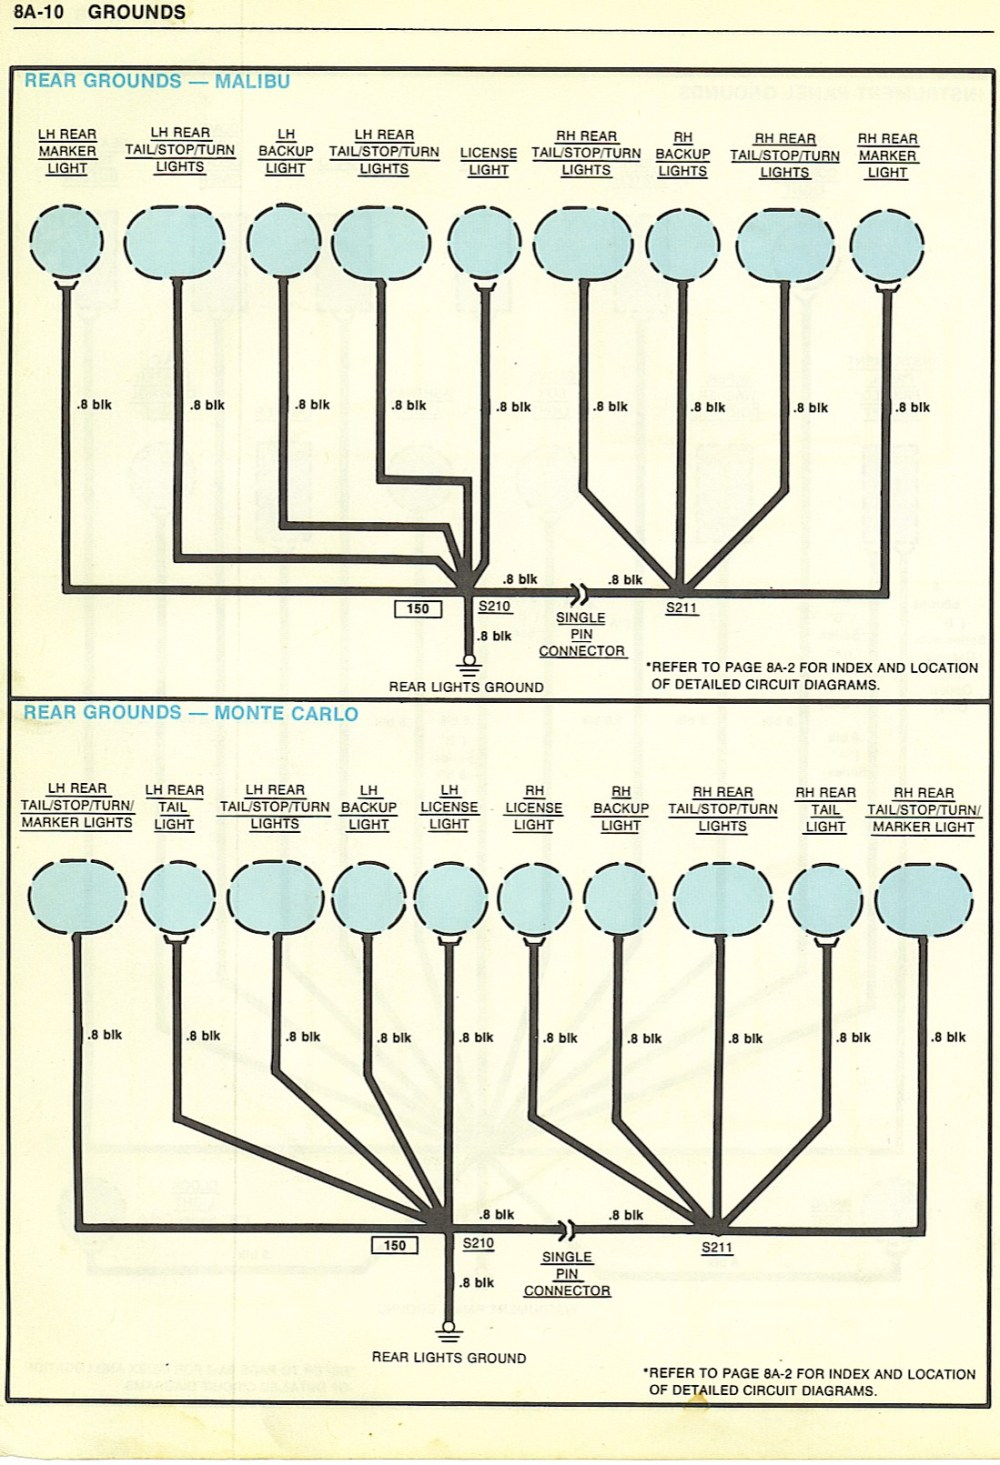 medium resolution of 1999 monte carlo wiring schematic wiring library rh 81 bloxhuette de 1970 monte carlo wiring diagram